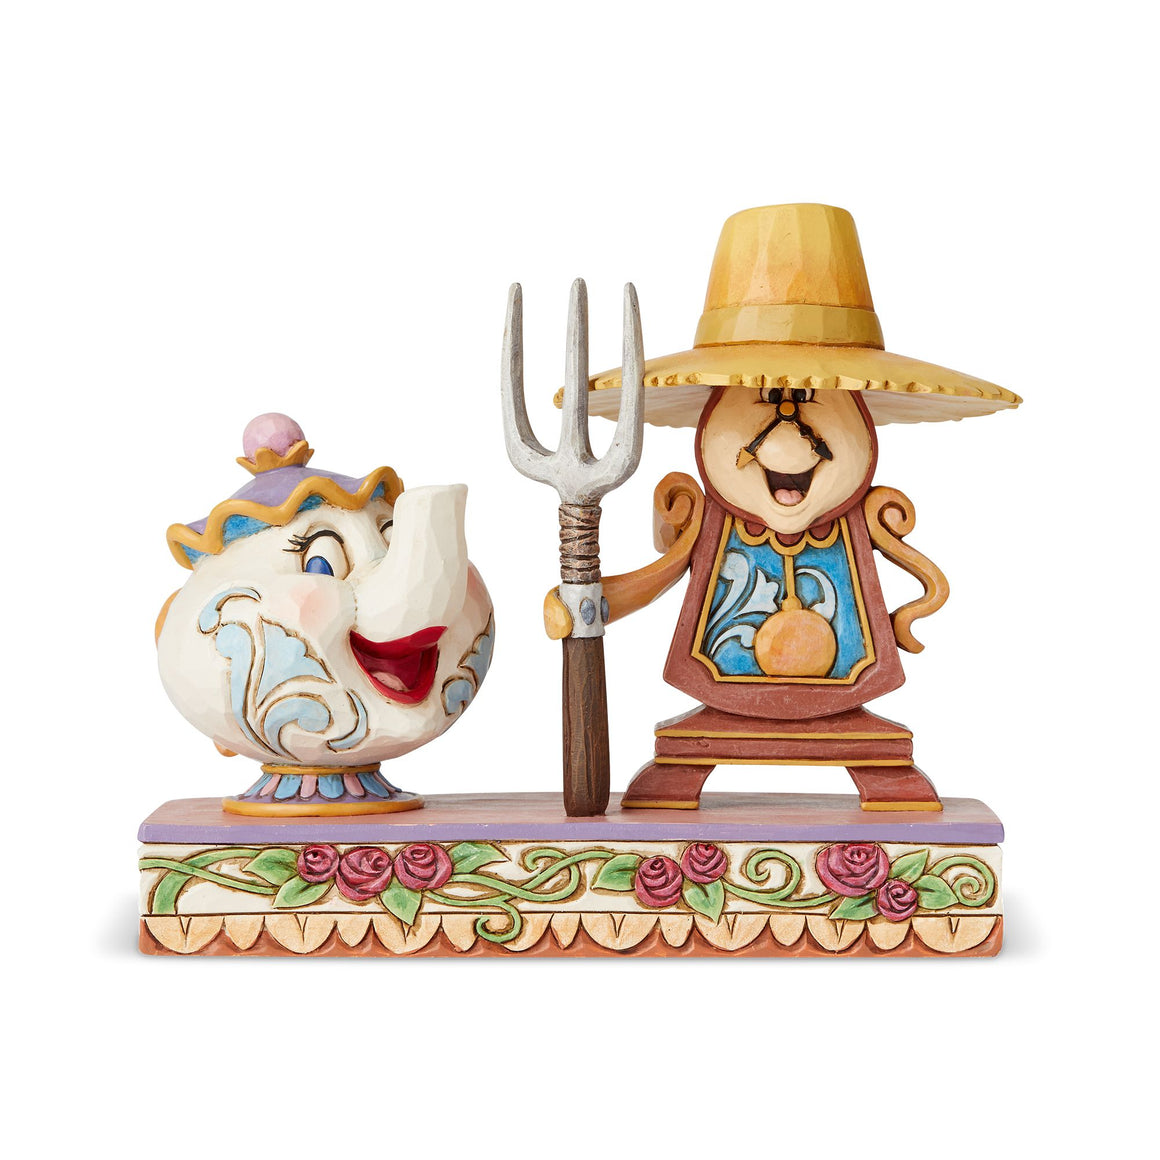 Workin Round the Clock - Mrs Potts and Cogsworth Figurine - Disney Traditions byJim Shore